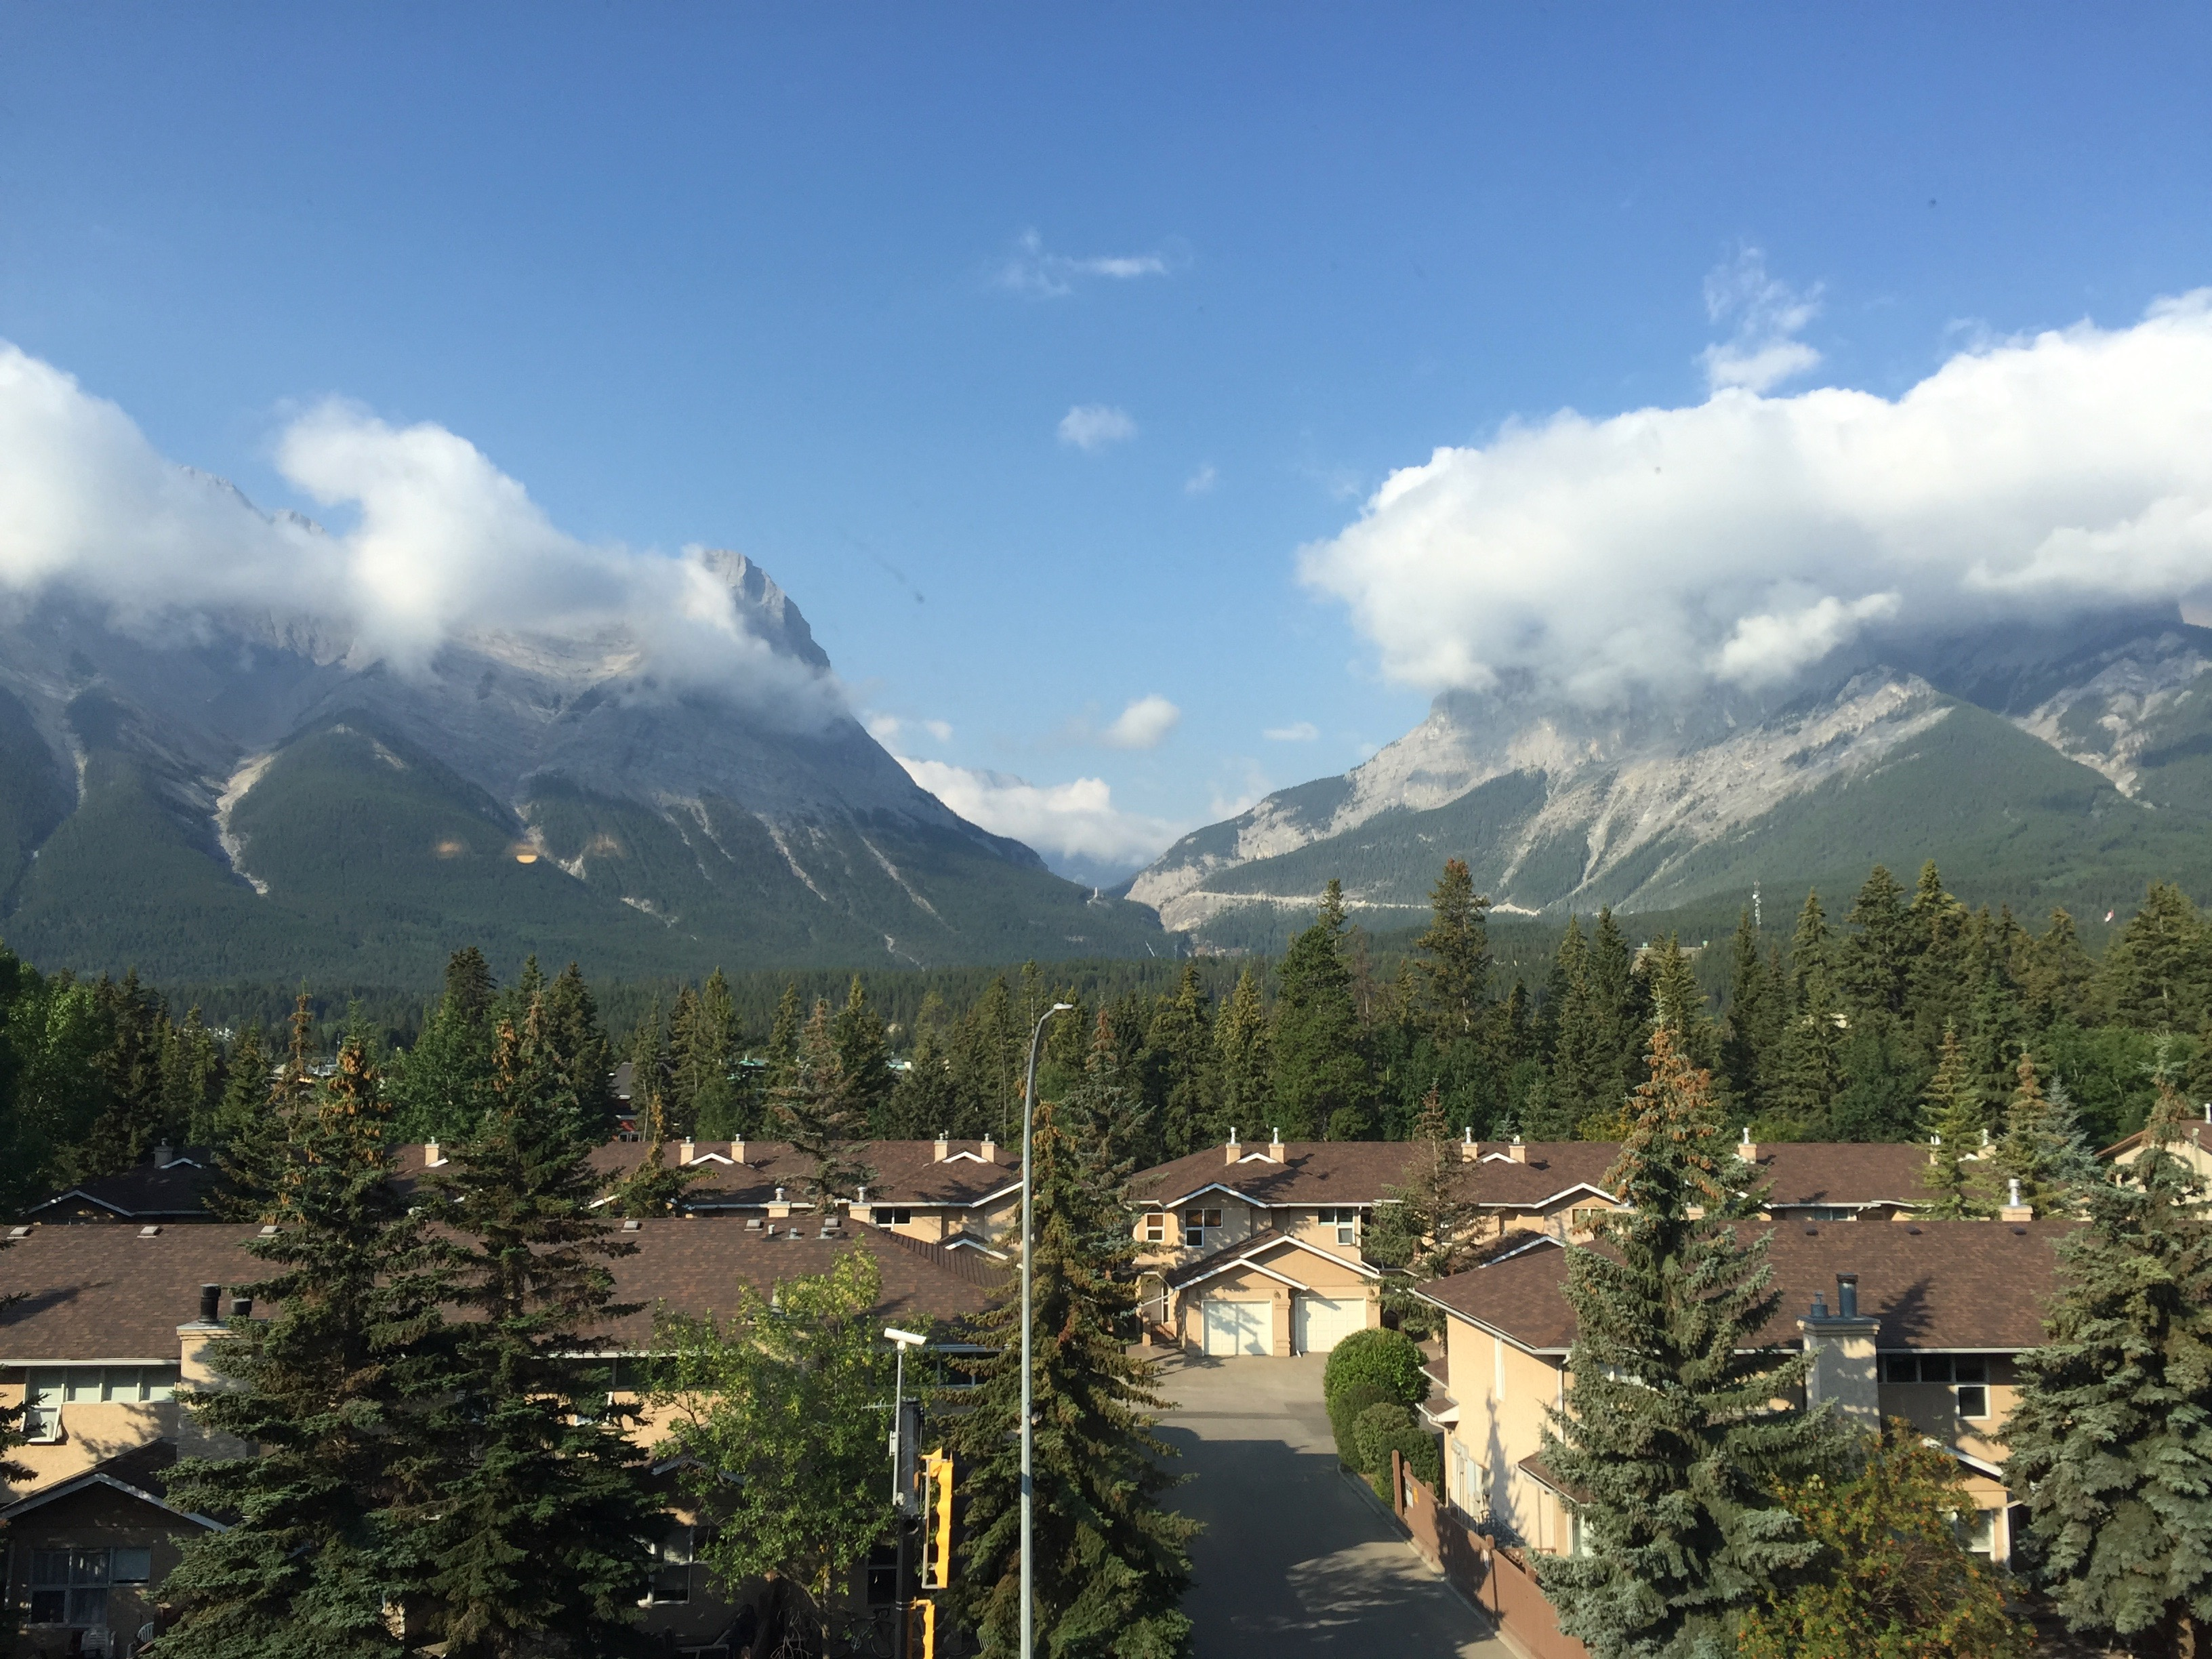 Canmore with clear skies 13 August 2018